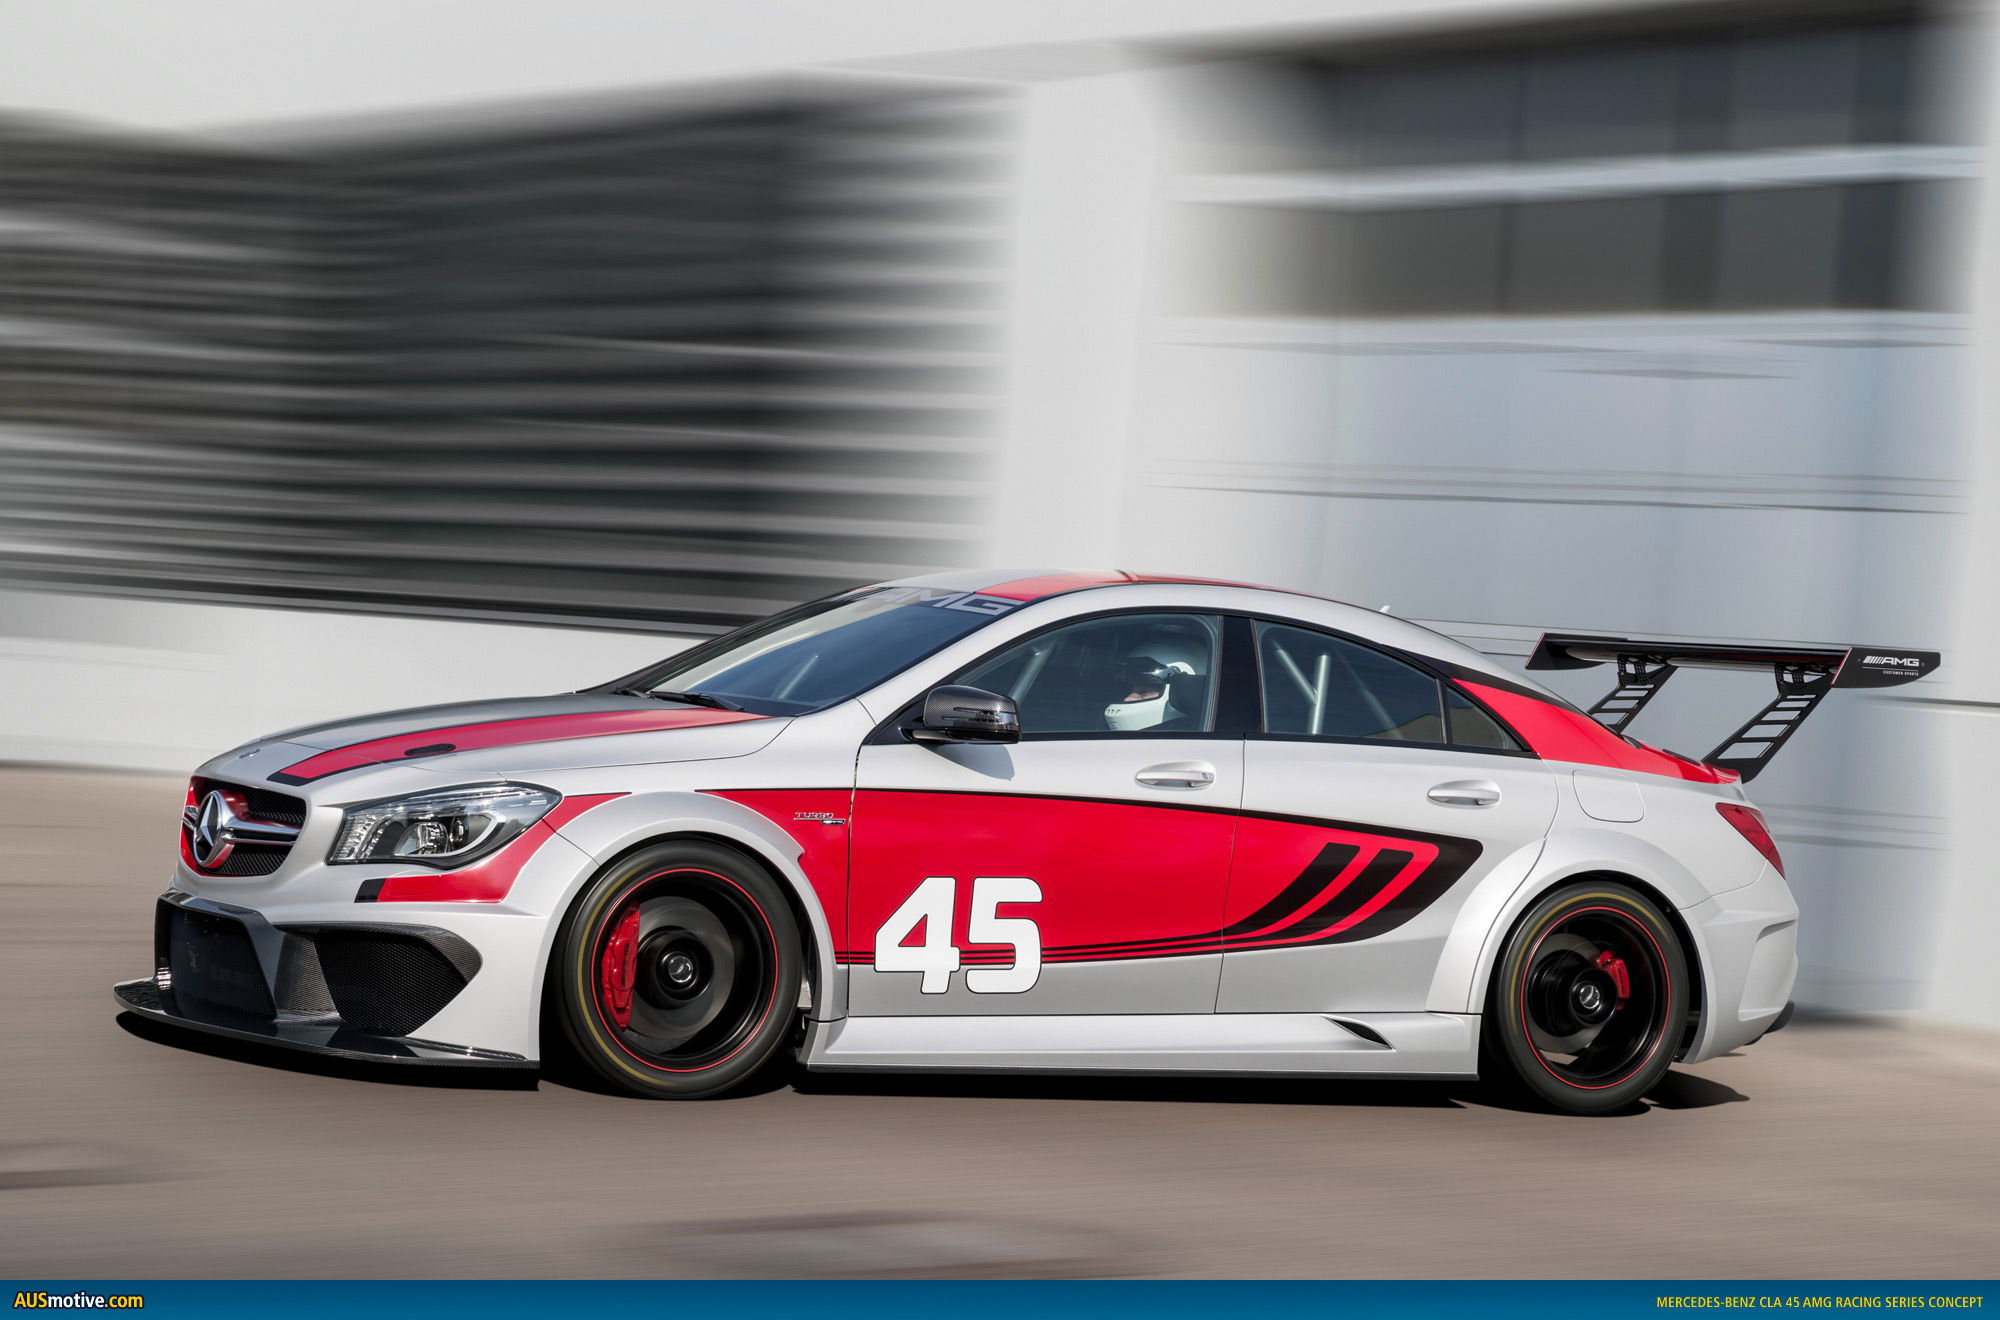 Cla 45 2019 >> AUSmotive.com » Mercedes CLA 45 AMG Racing Series concept revealed